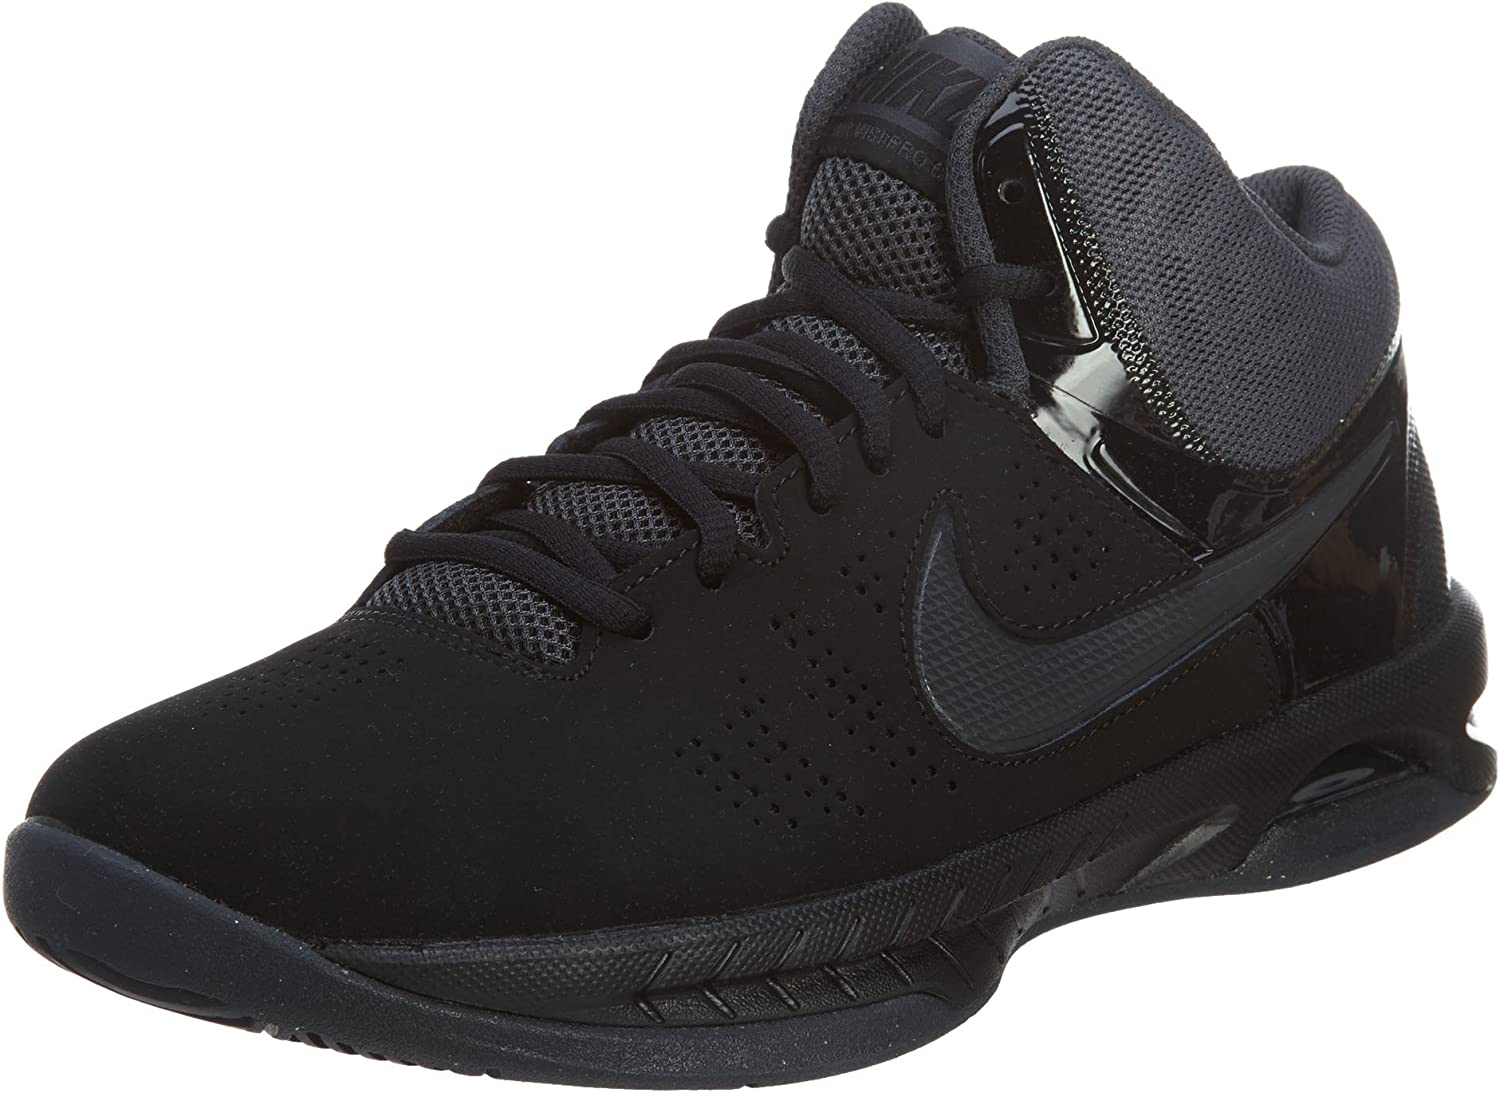 Nike Men's Air Visi Pro Vi